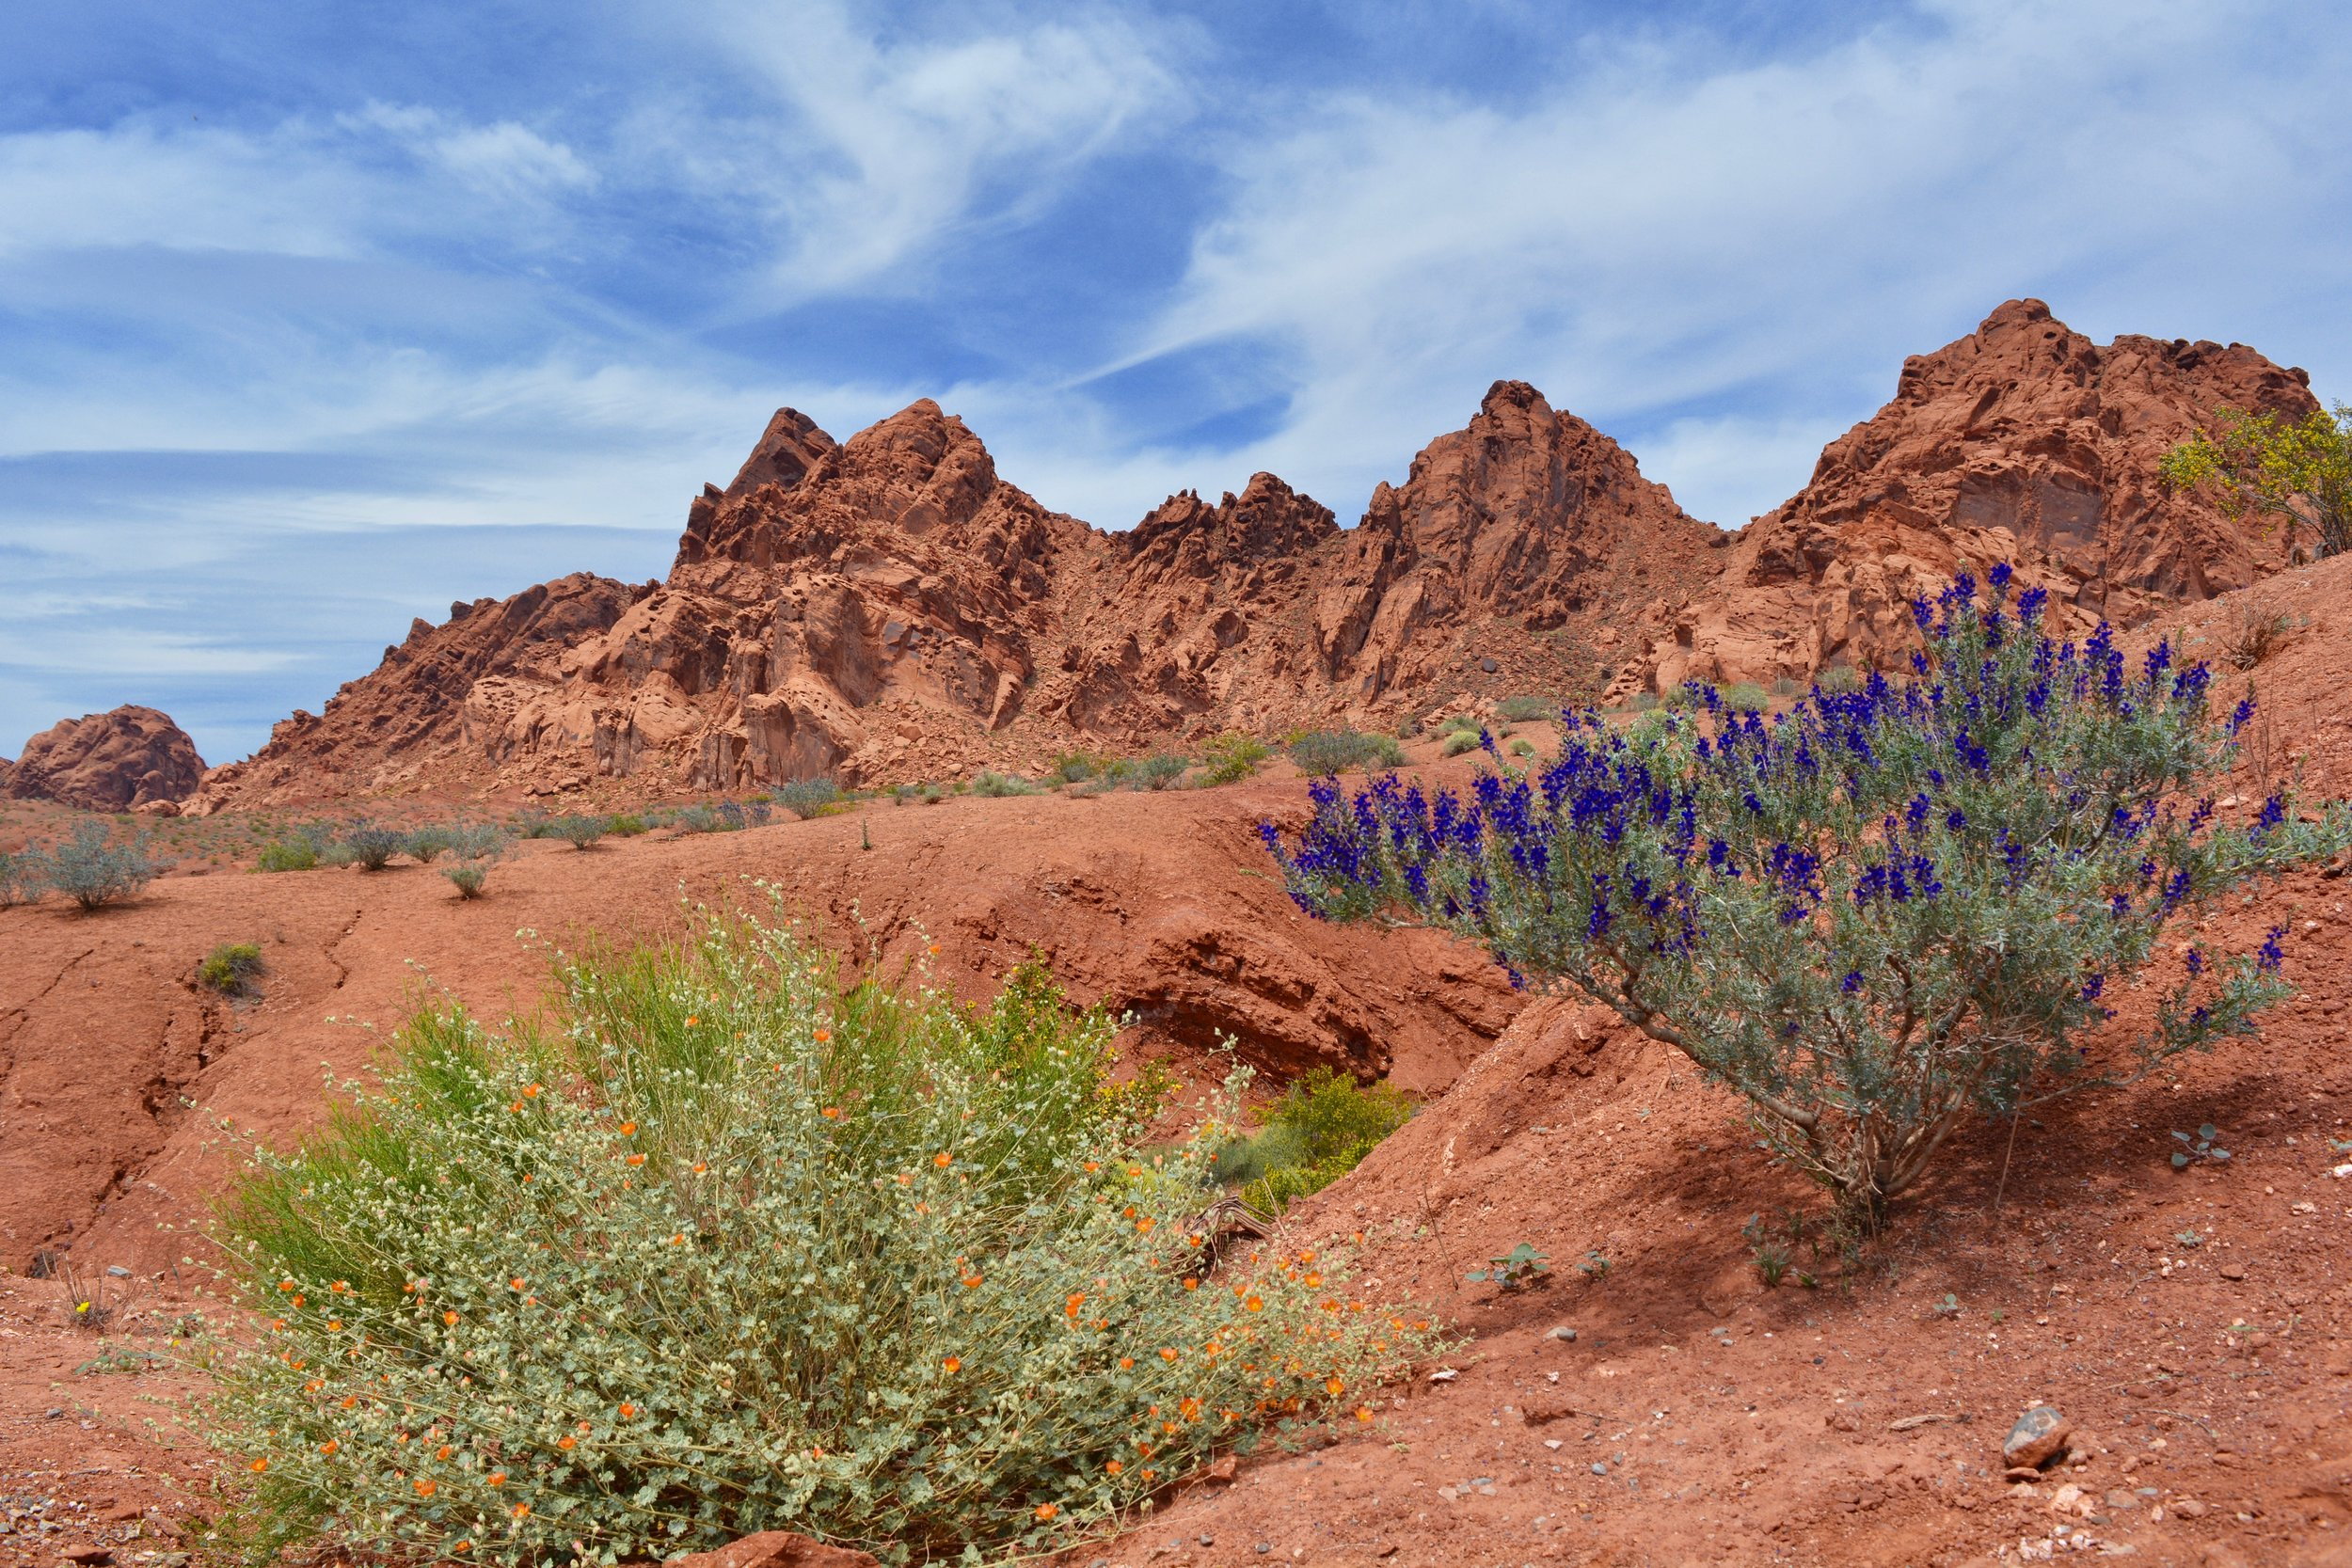 Desert globemallow and indigo bush blooming at Valley of Fire State Park